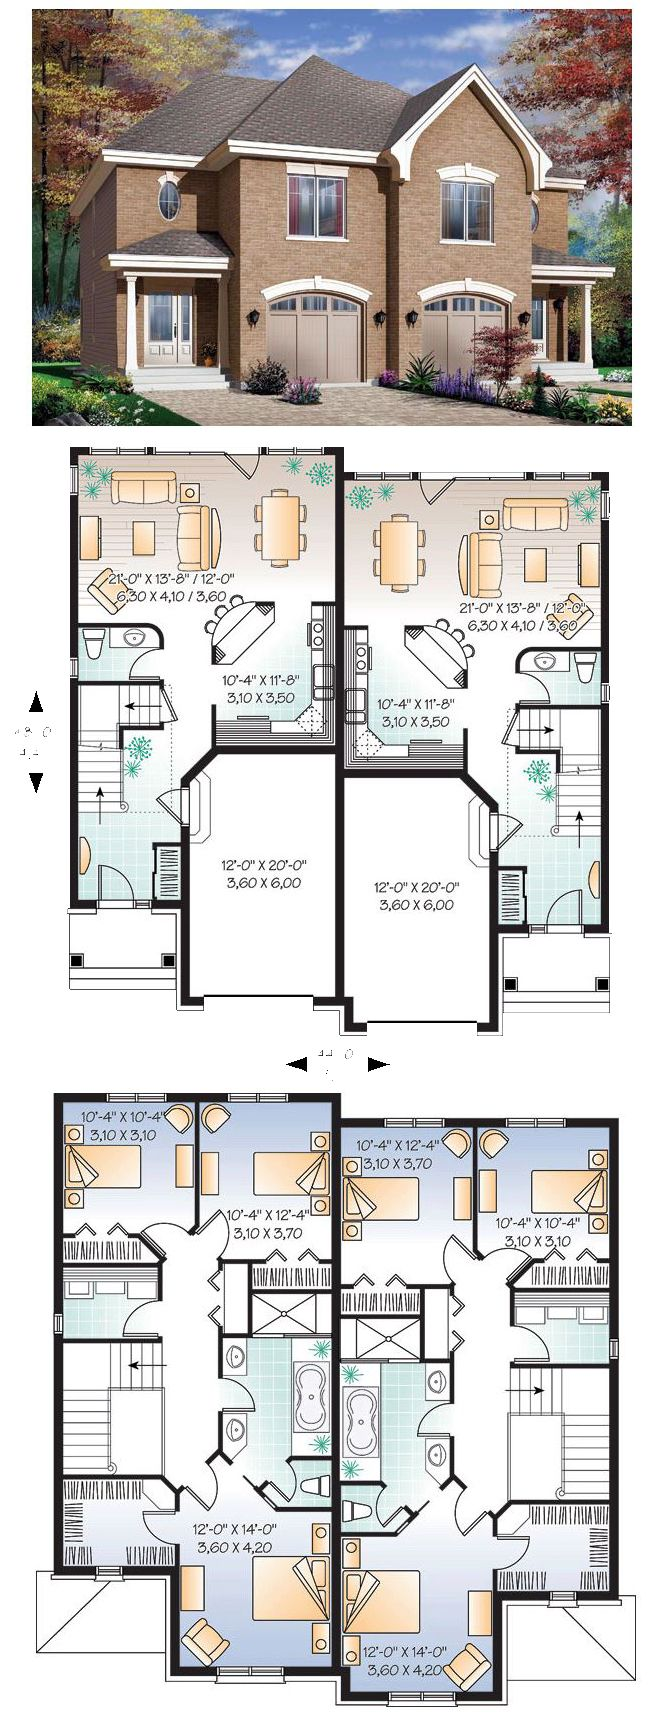 Best 25 duplex house plans ideas on pinterest duplex for Single family house plans